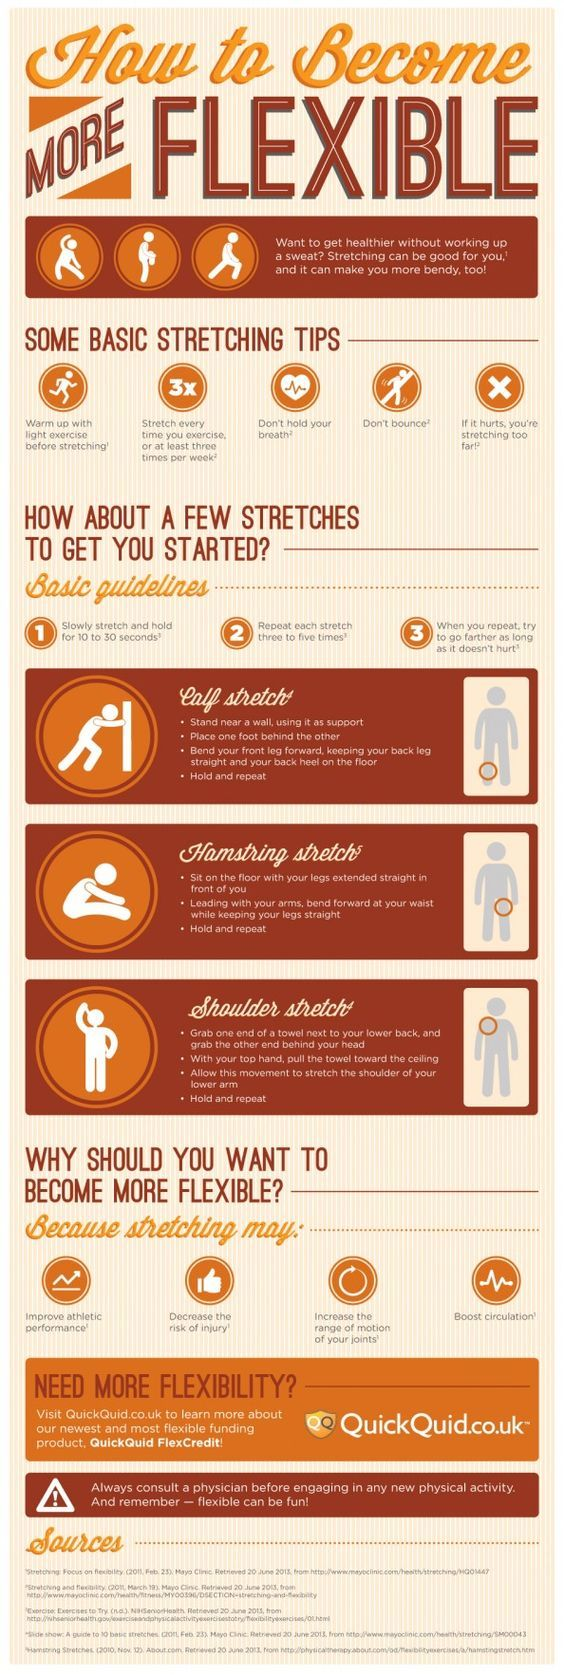 How to Become More Flexible Which Helps Retain Mobility, Strength and Quality Of Life As We #Age.